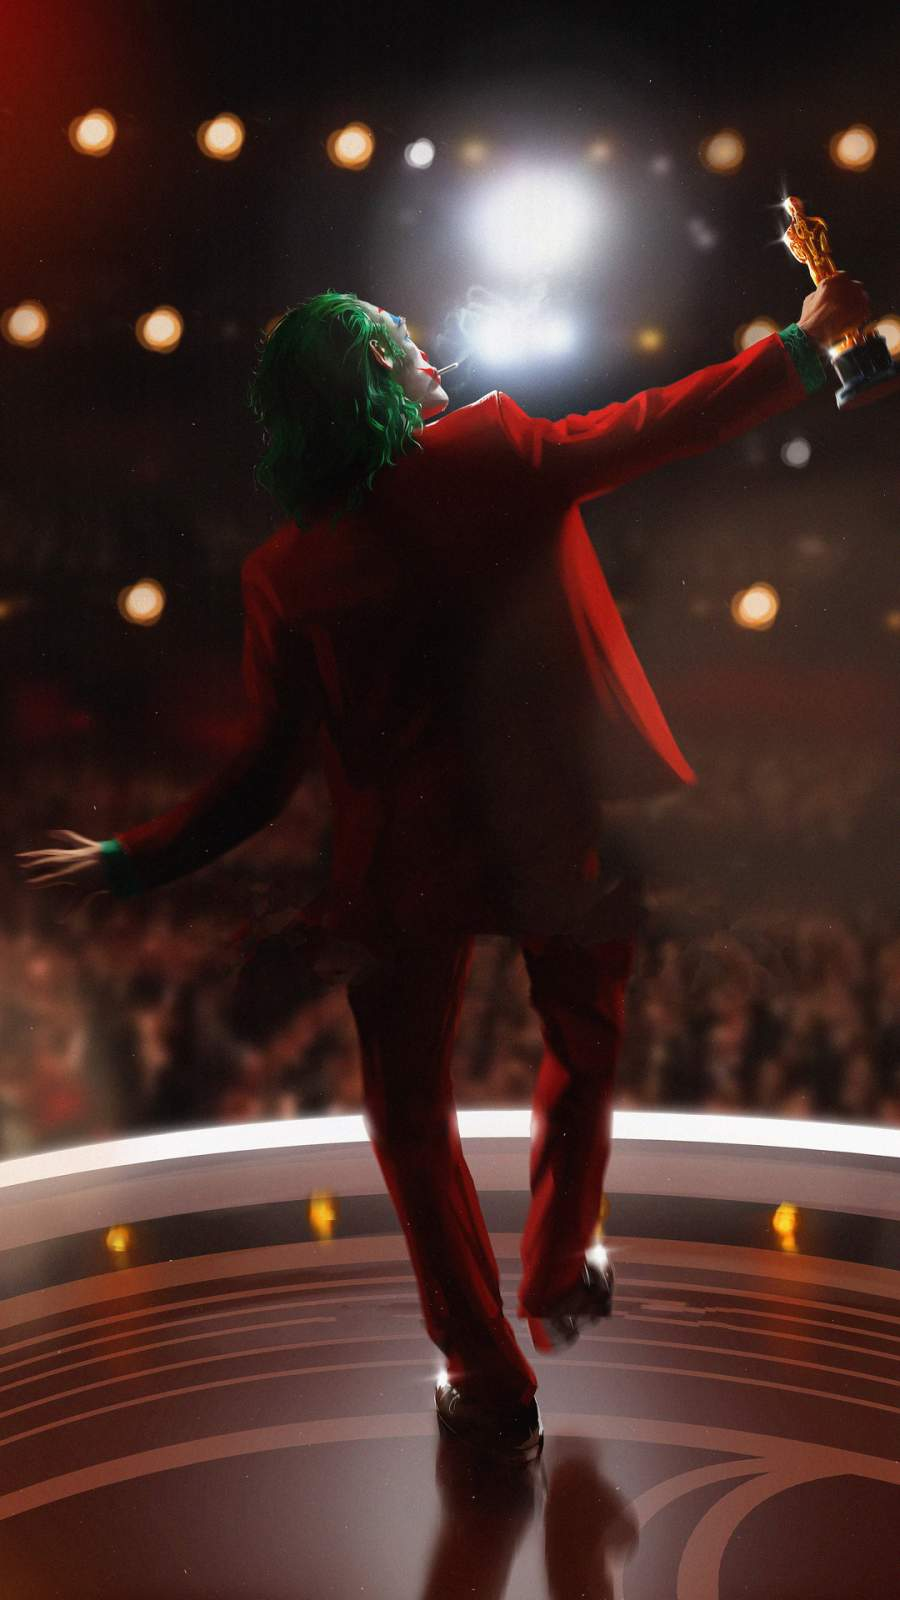 Joker Oscar Winning Dance